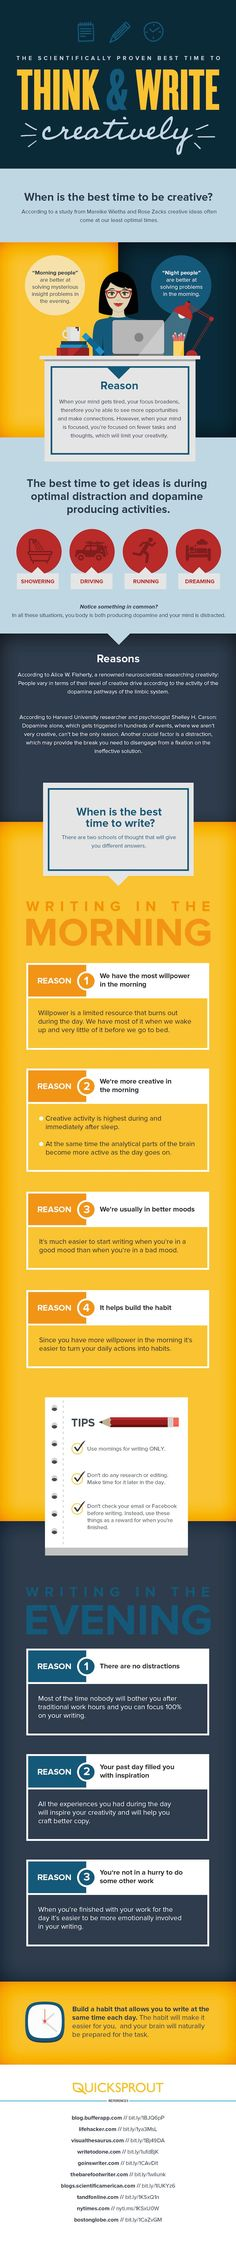 Infographic: The Scientifically Proven Best Time For Creative Thinking, Writing